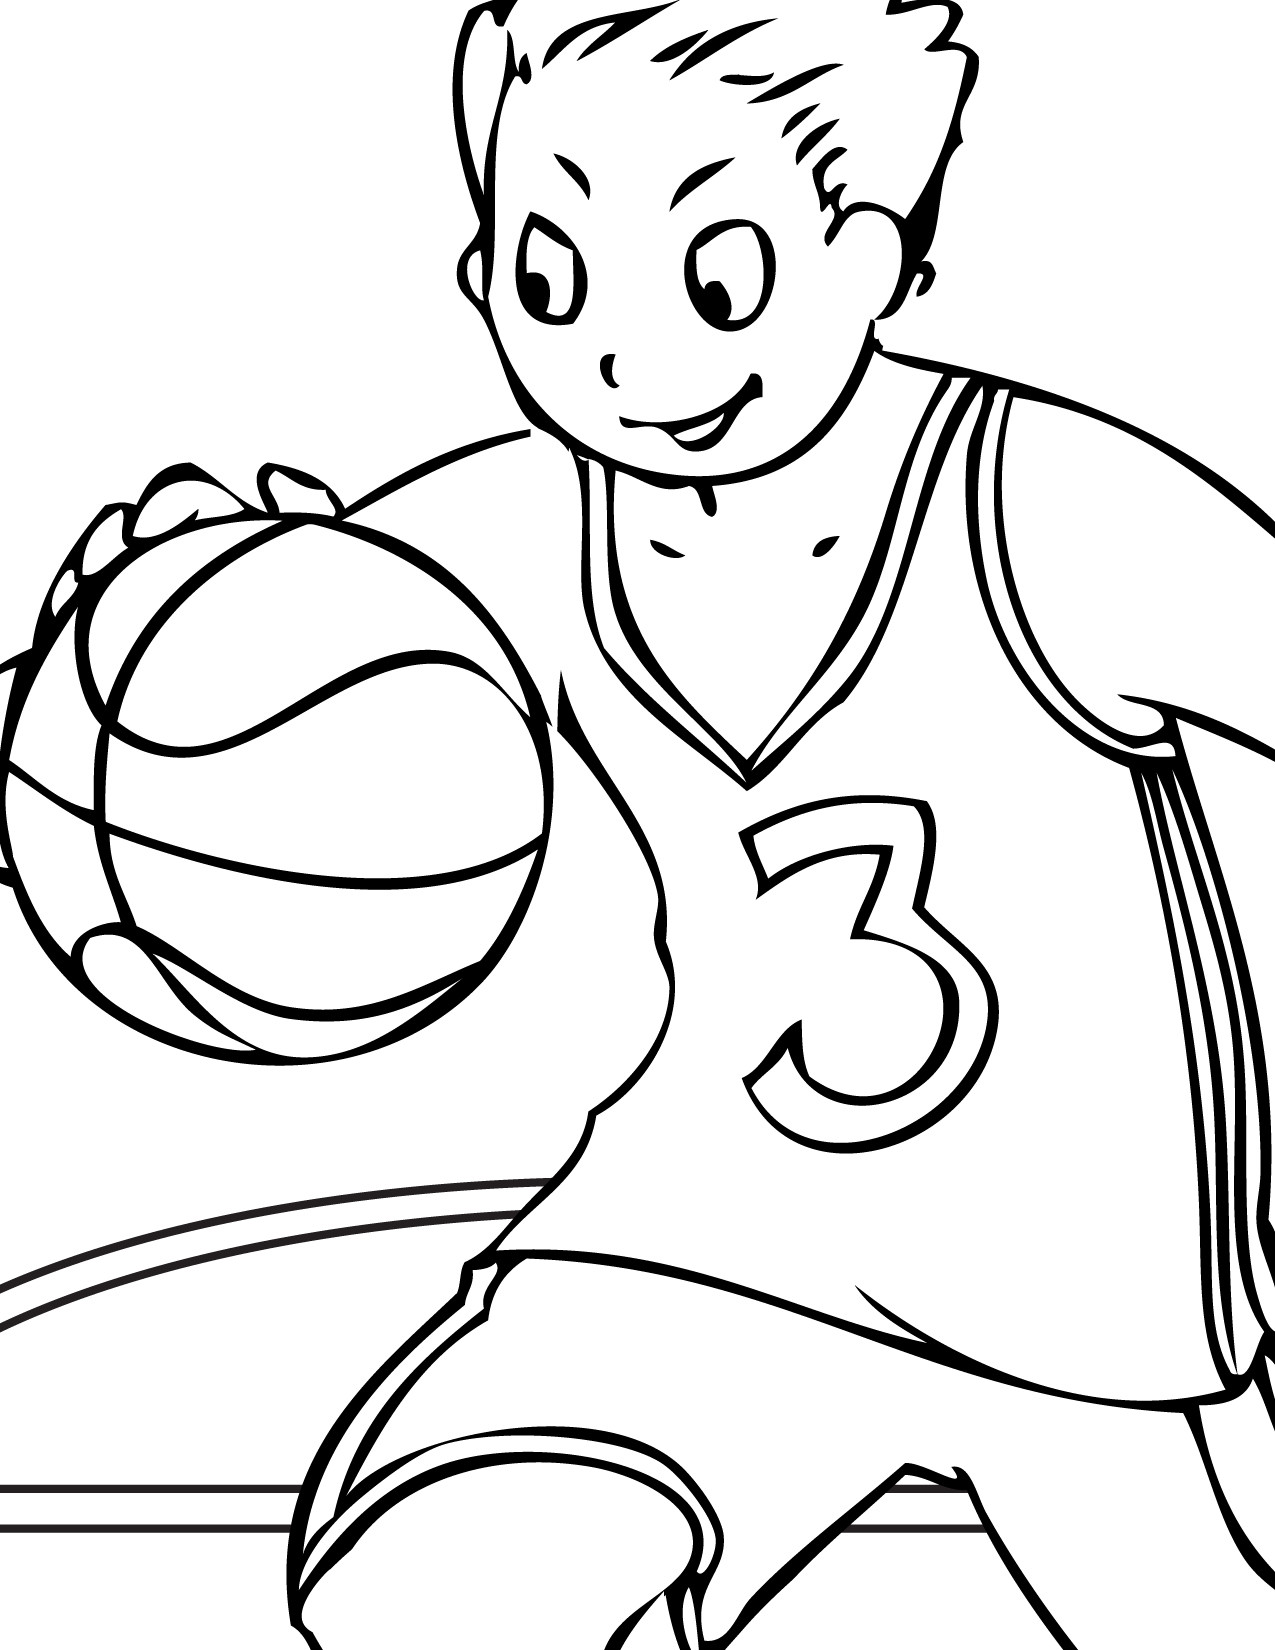 Kids Free Coloring Sheets  Free Printable Volleyball Coloring Pages For Kids